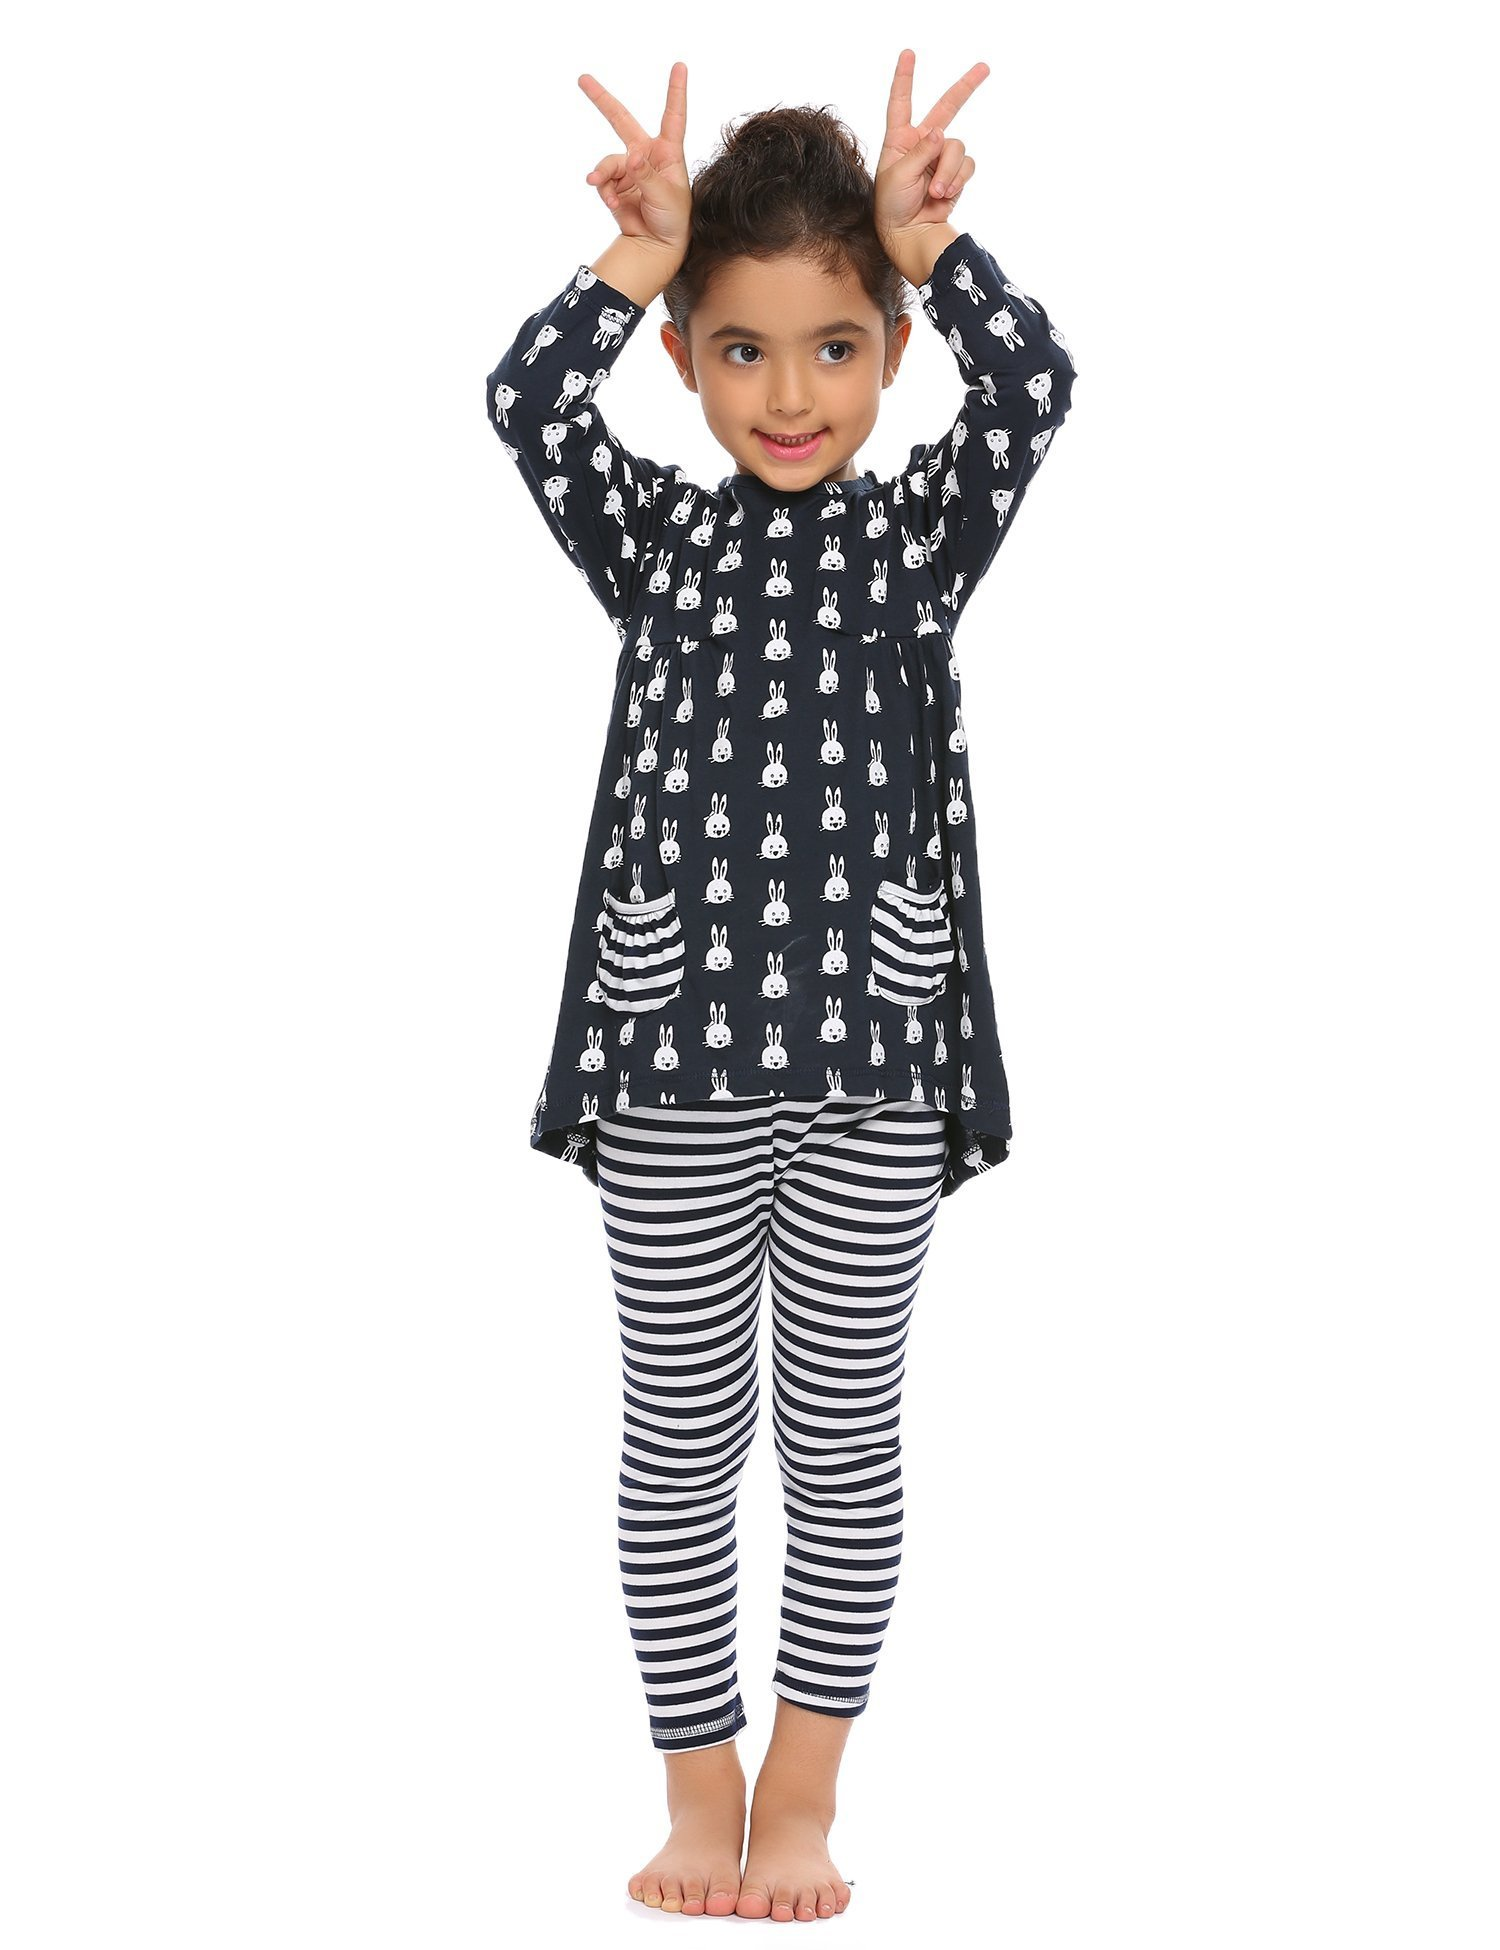 Arshiner Little Girls Long Sleeve Cute Rabbit Print with Pockets Cotton Outfit 12 pcs Pants Sets Top+Legging,Navy Blue,130(7-8years old) by Arshiner